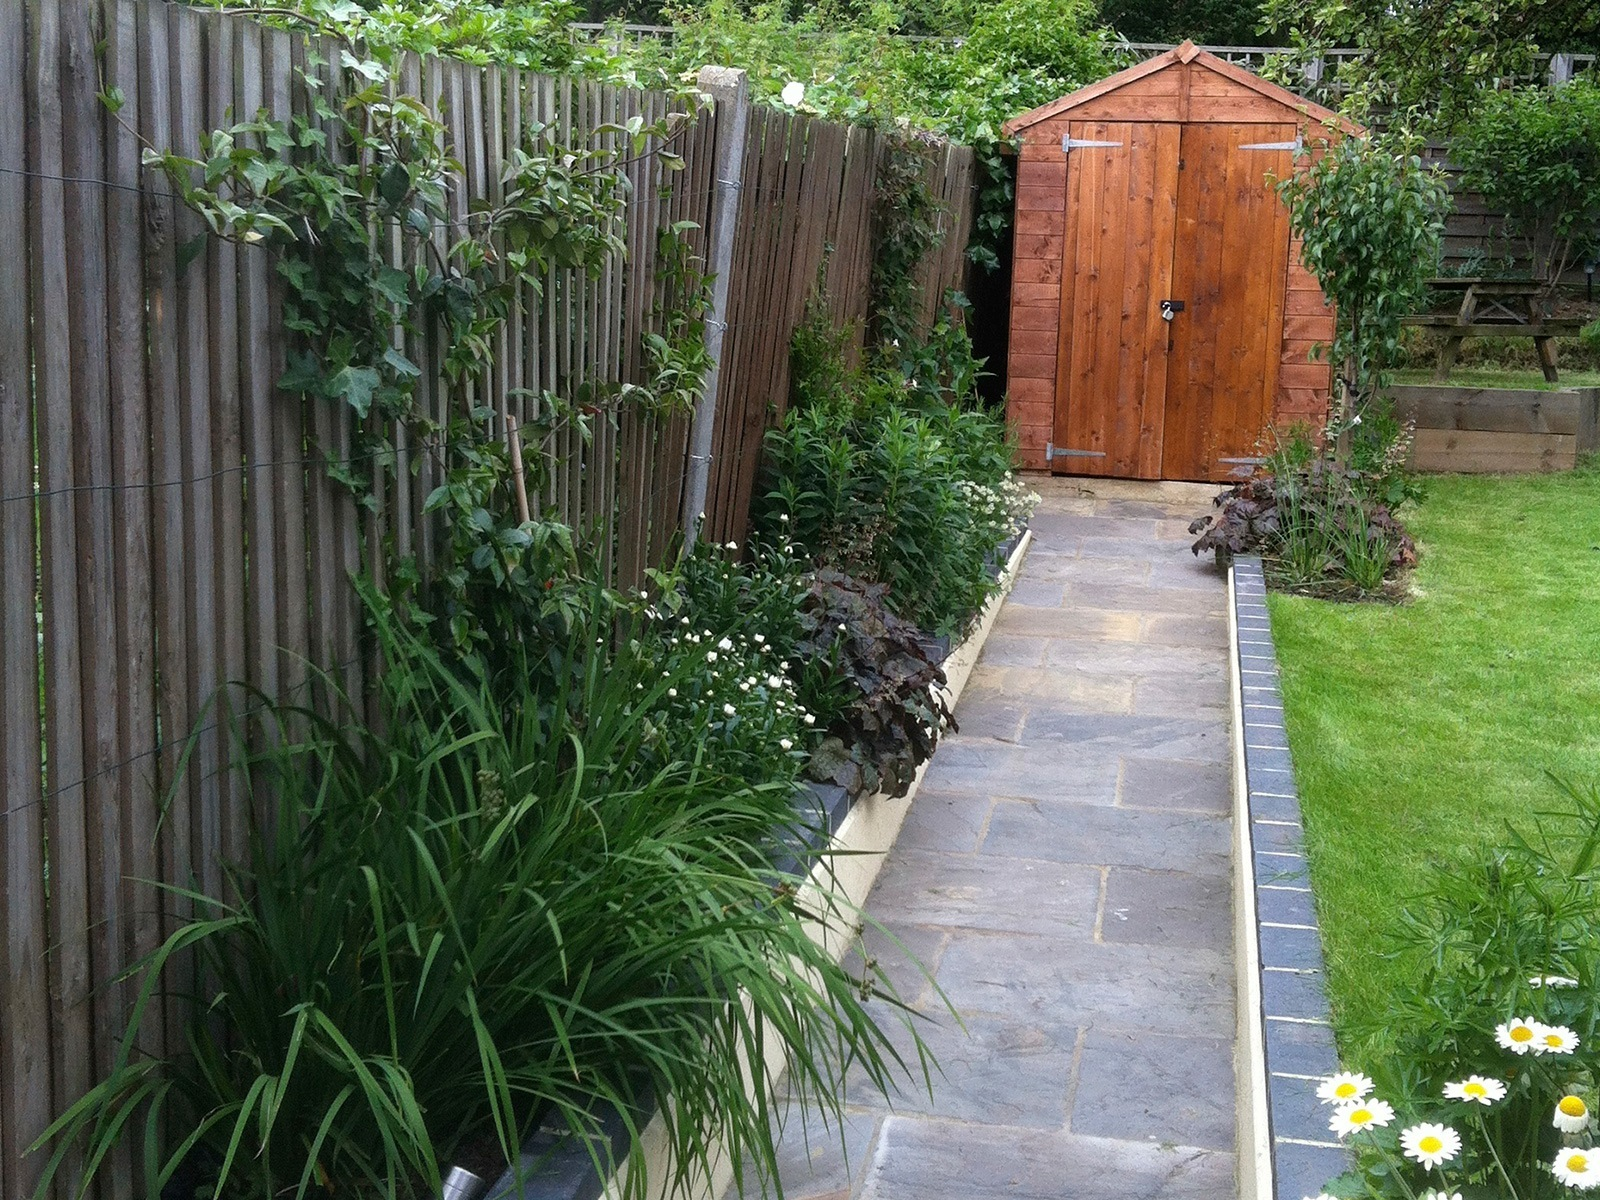 Easy access to the garden shed: vital in a family garden to store toys and garden equipment.